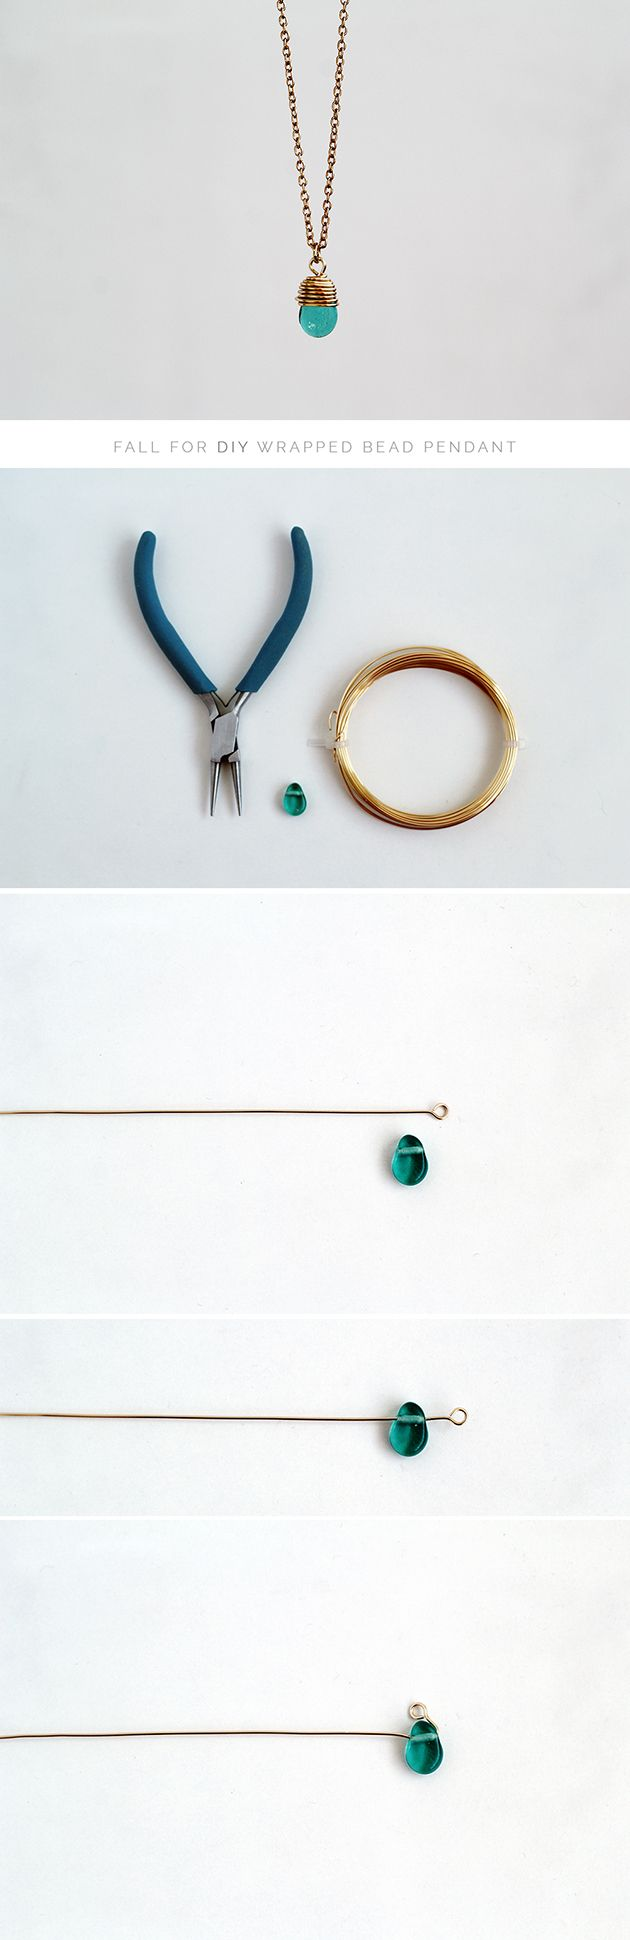 Fall For DIY How To Wrap a Bead